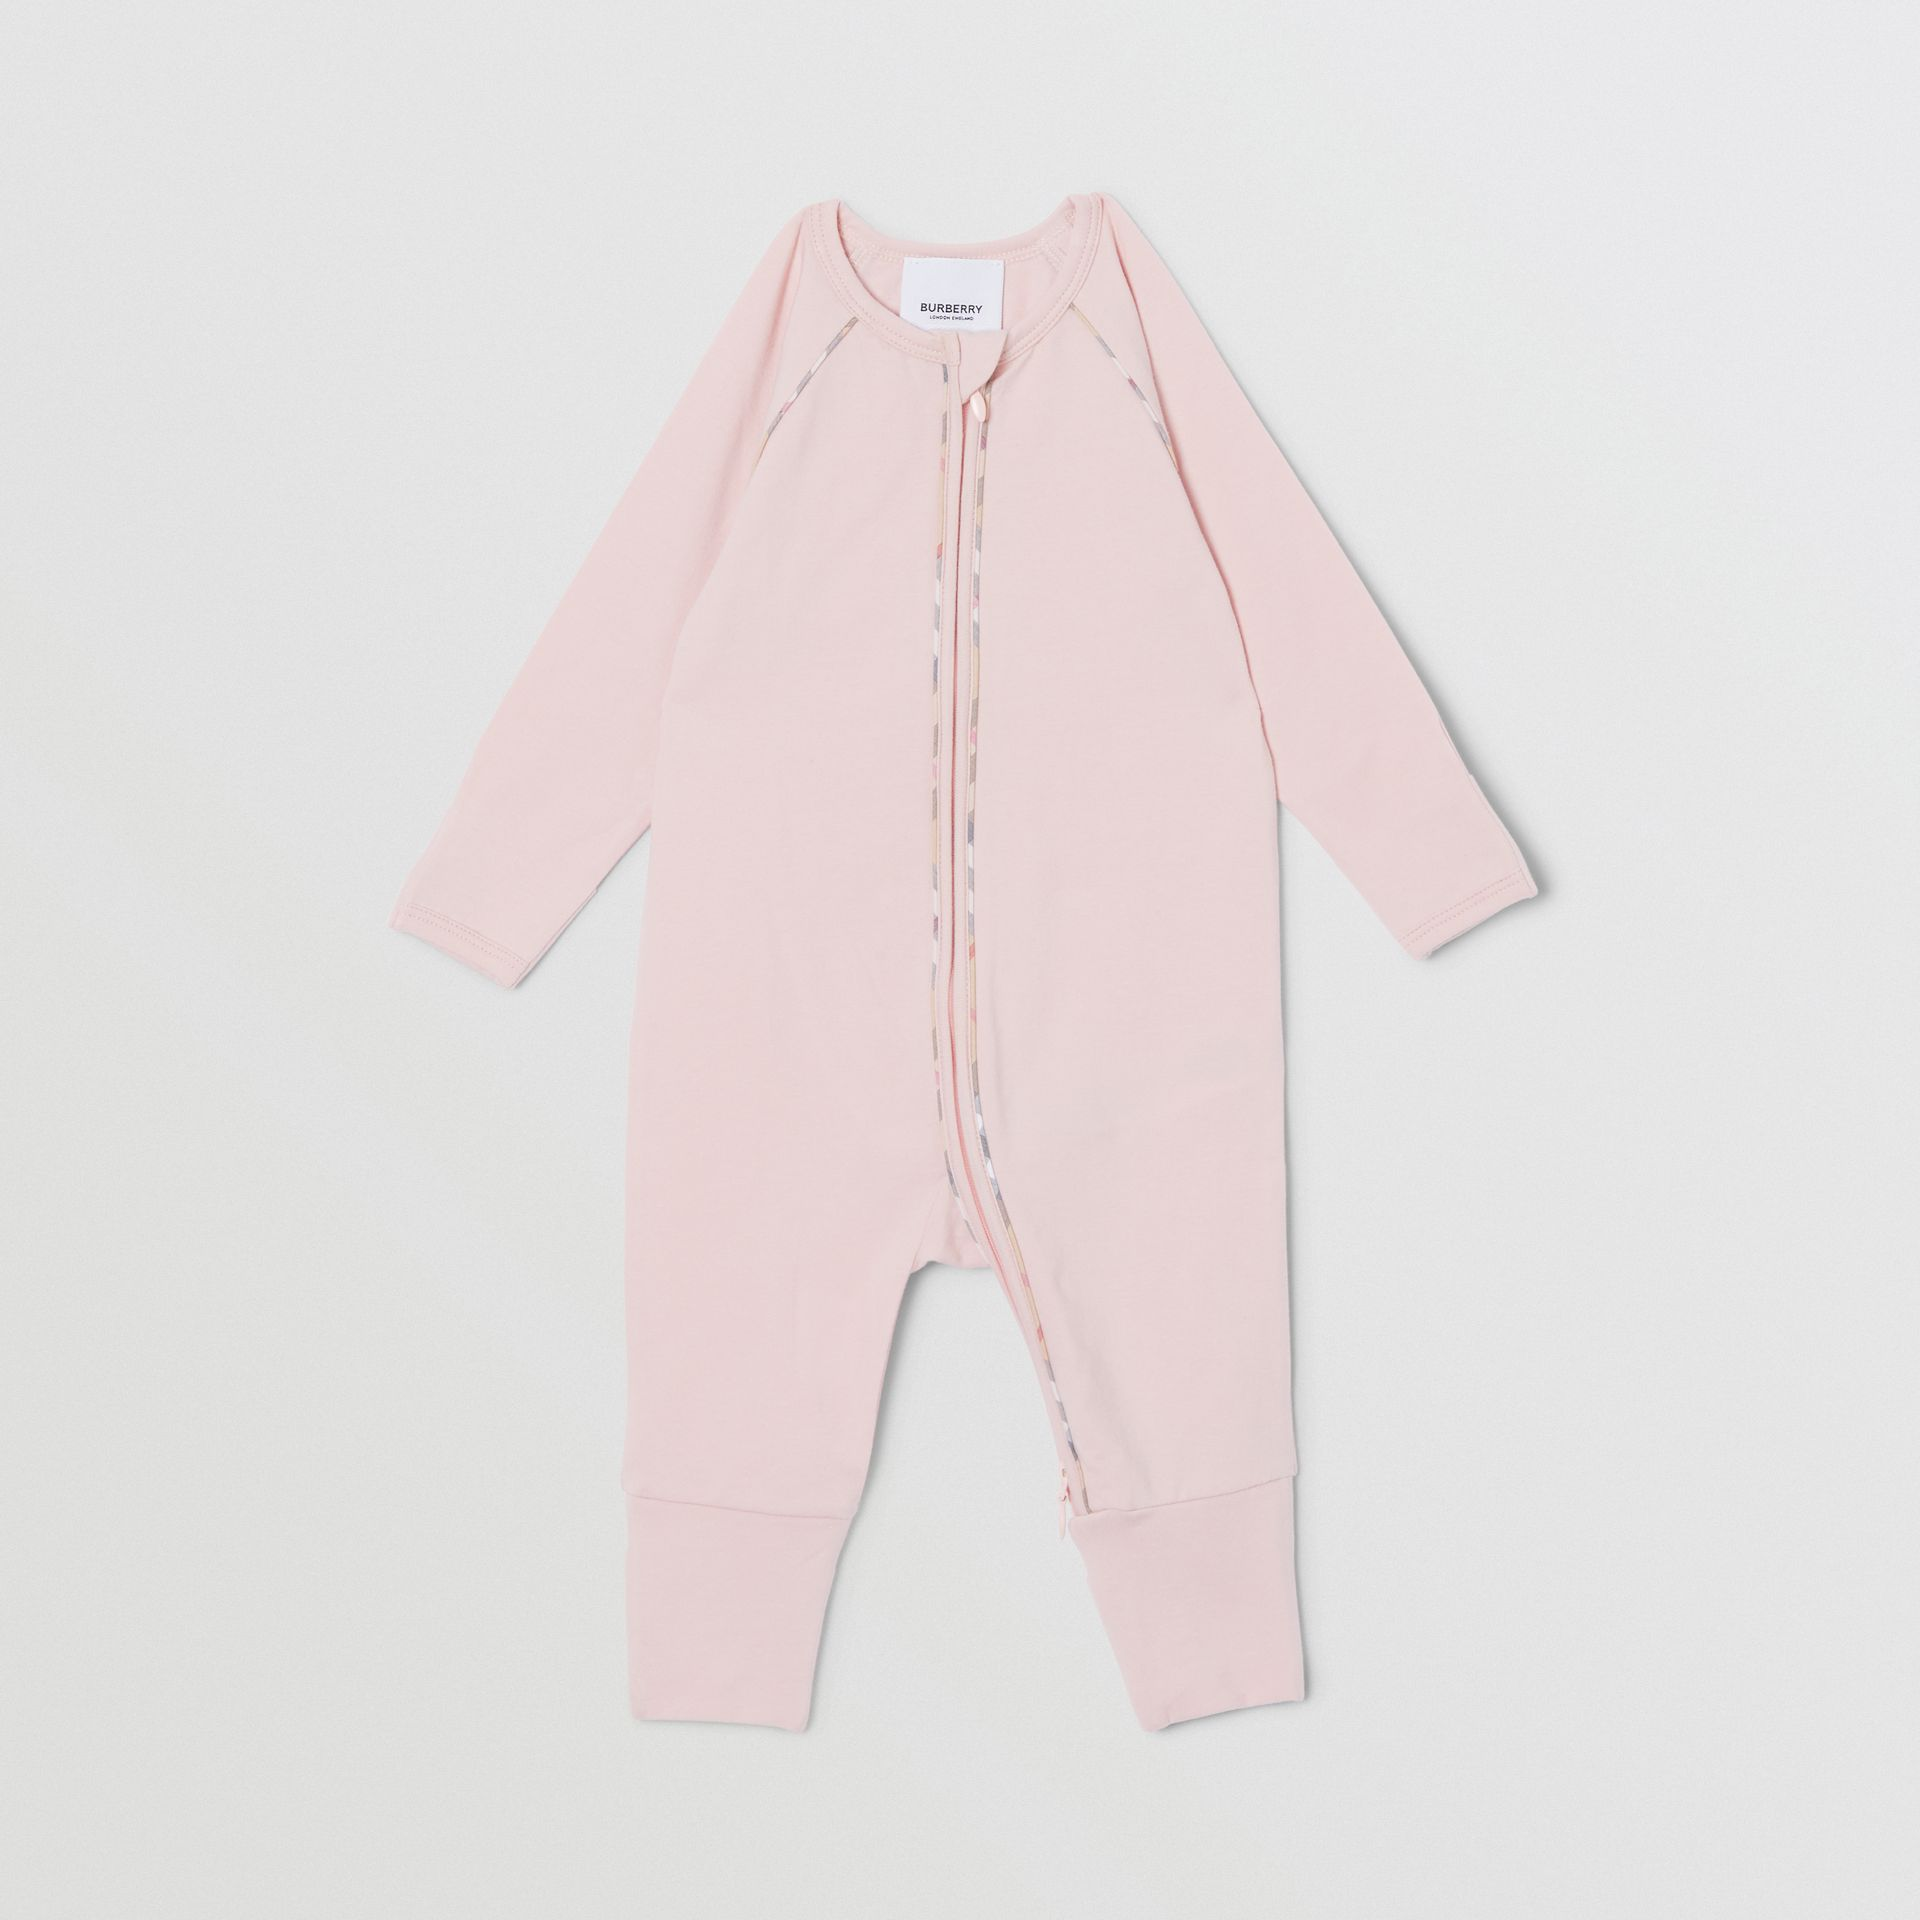 Check Trim Stretch Cotton Three-piece Baby Gift Set in Lavender Pink - Children | Burberry - gallery image 3